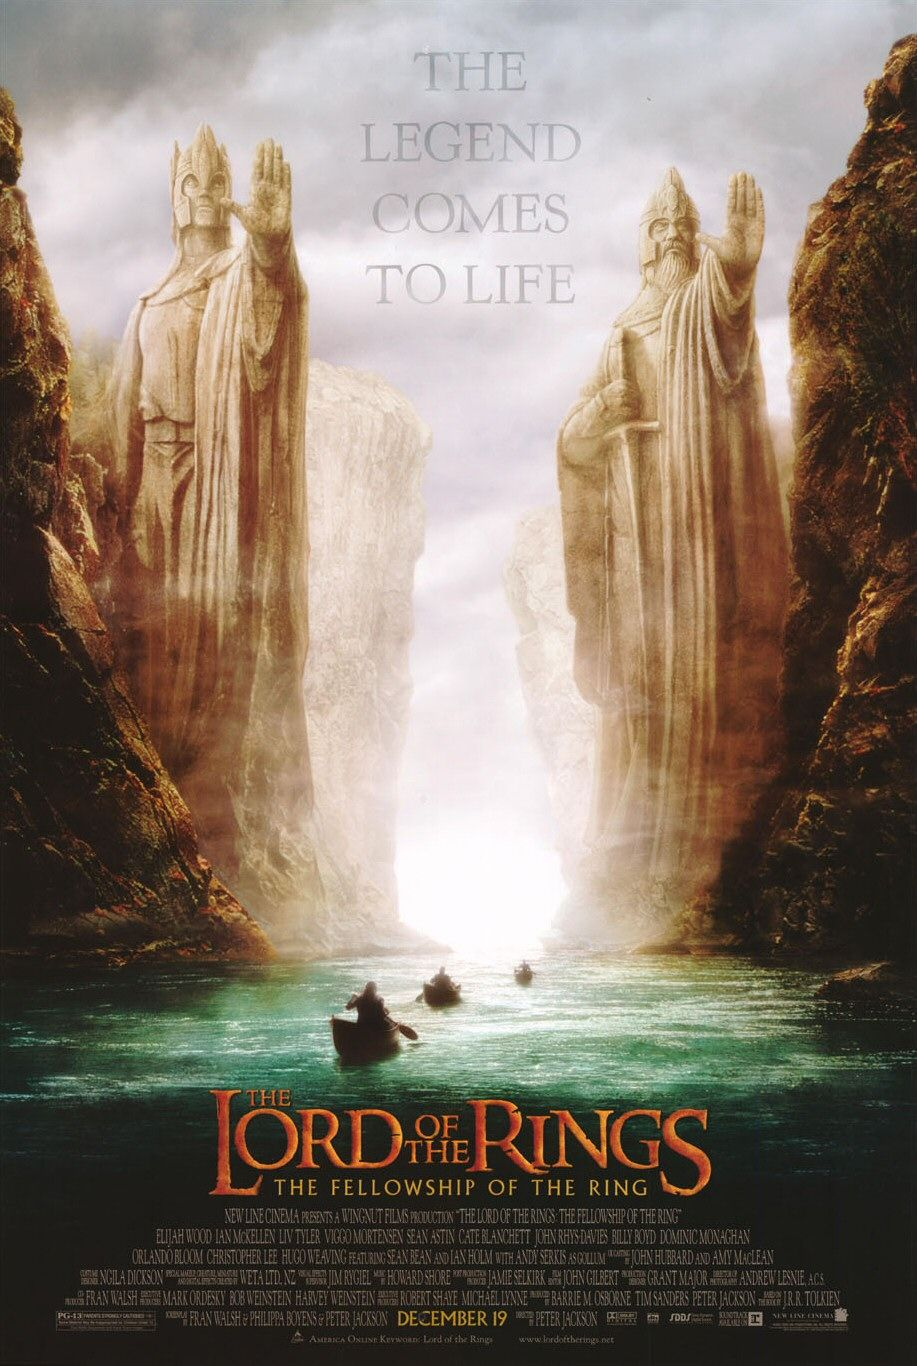 Movie Poster Lord of The Rings Lord of The Rings Poster